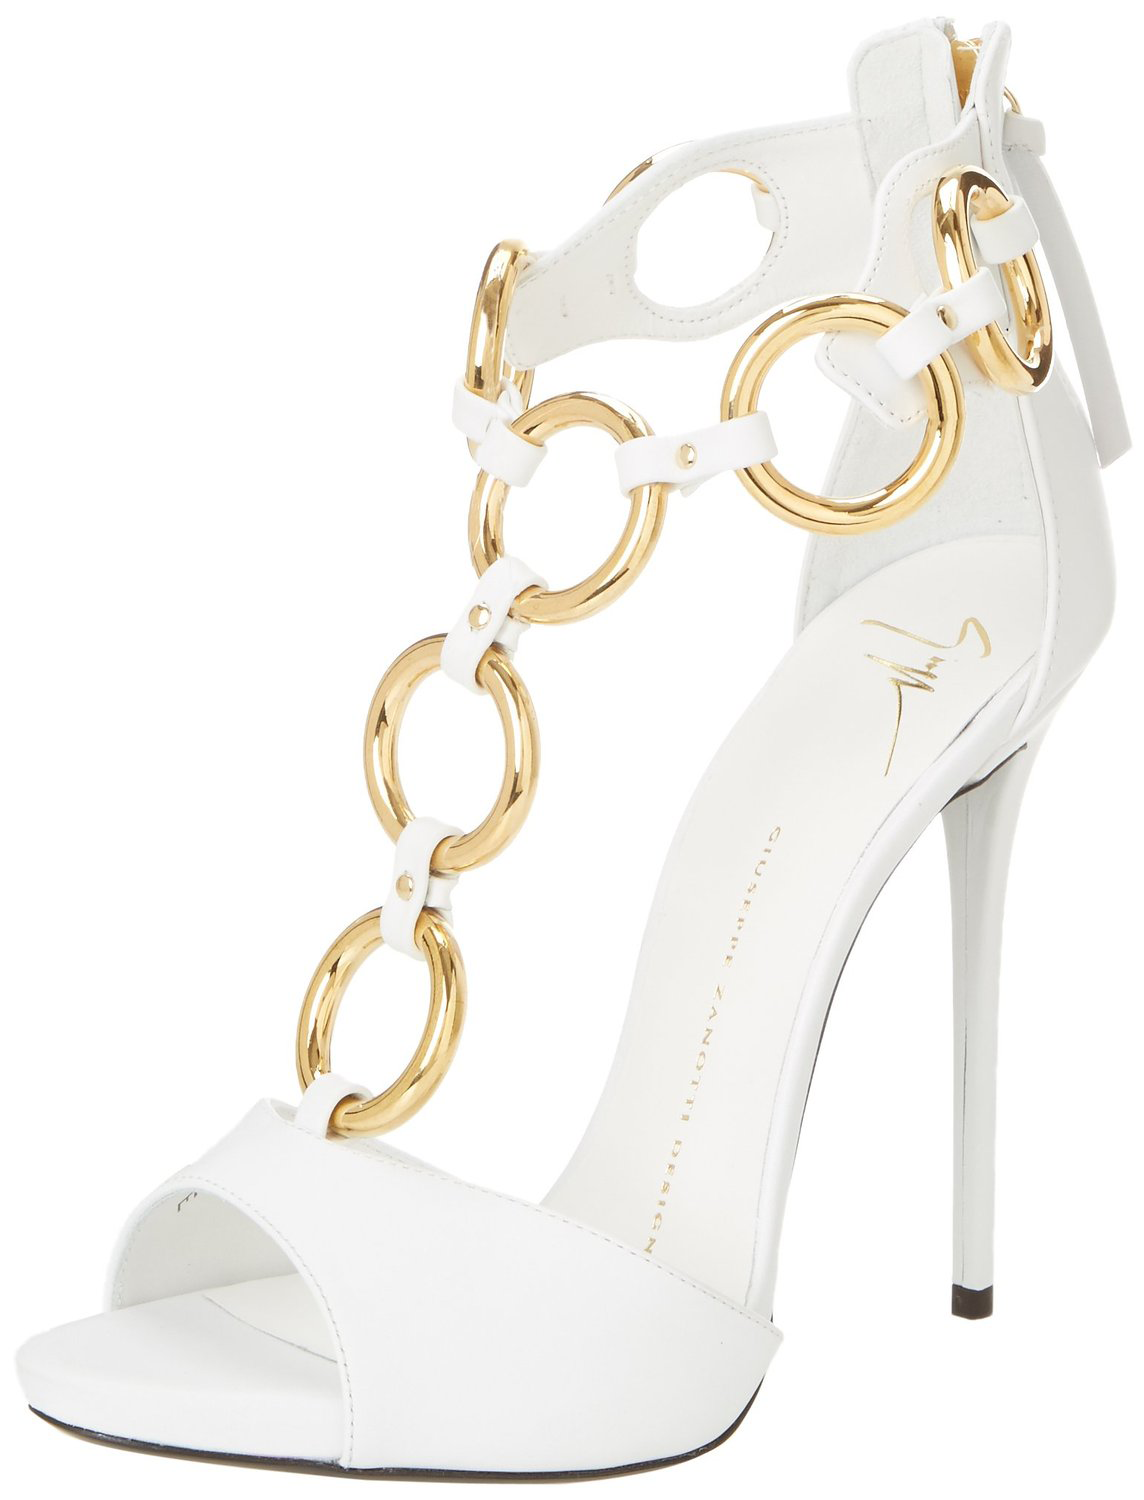 Elegant white and gold pump from Giuseppe Zanotti